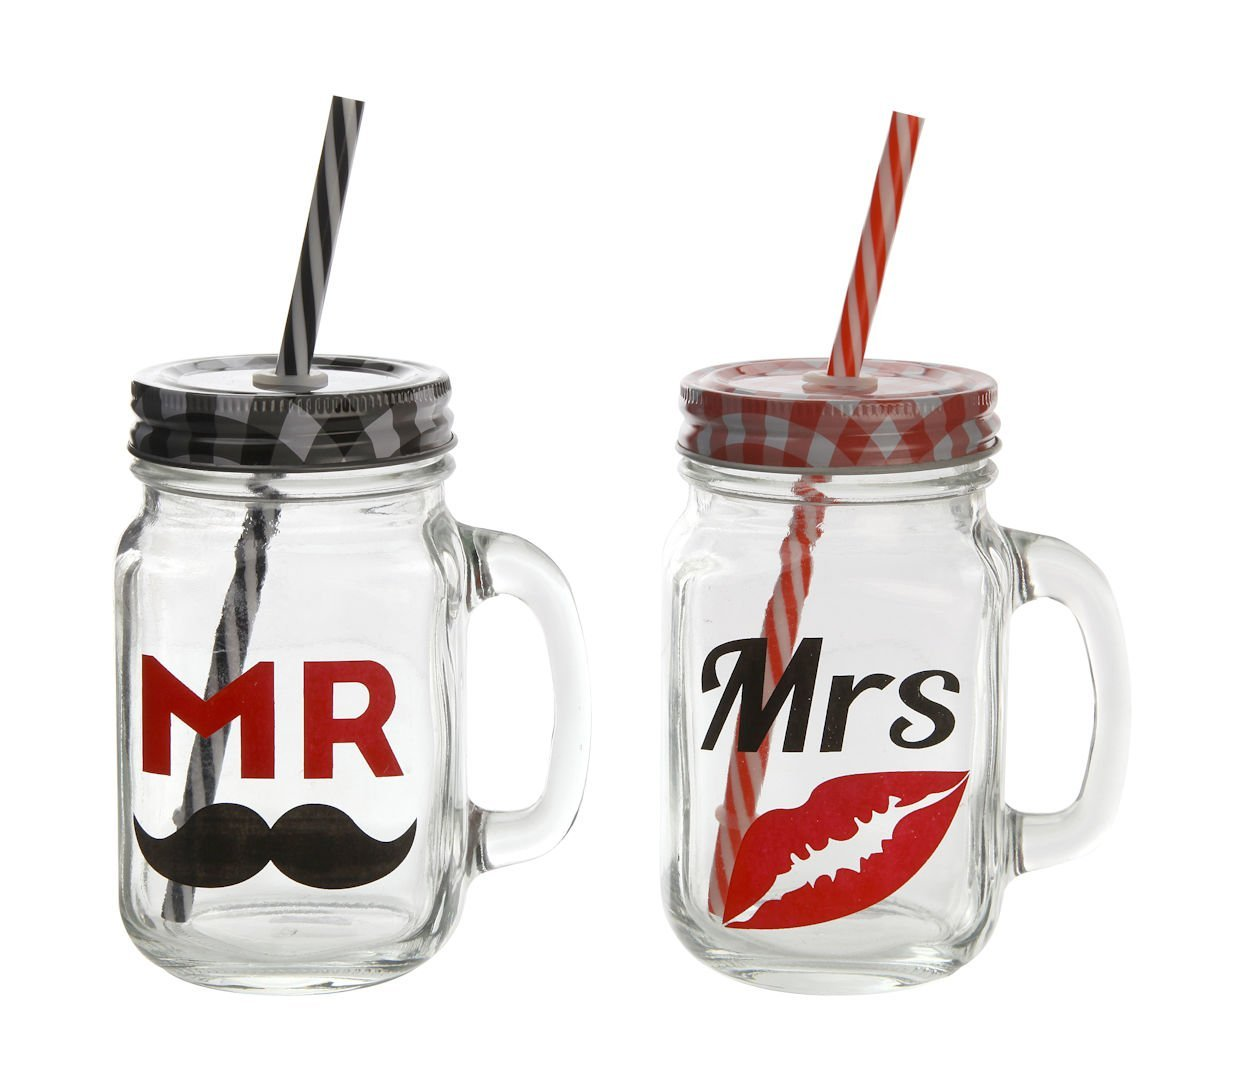 """Mr. & Mrs."" Trinkgläser mit Halm 2er Set"